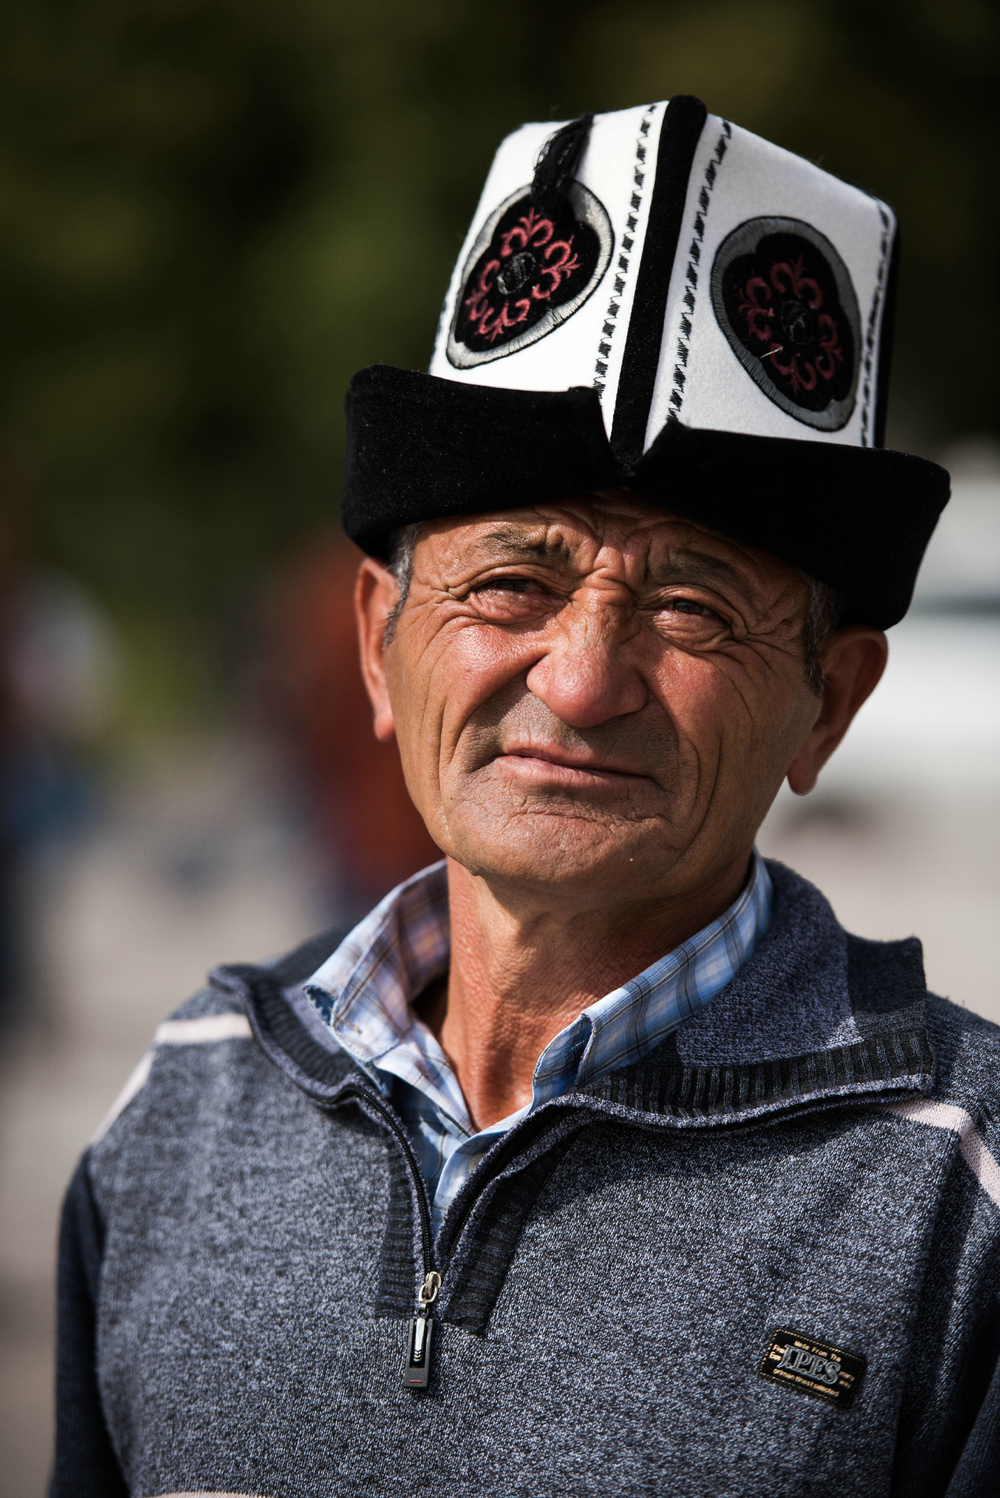 PHOTO OF THE DAY | BISHKEK